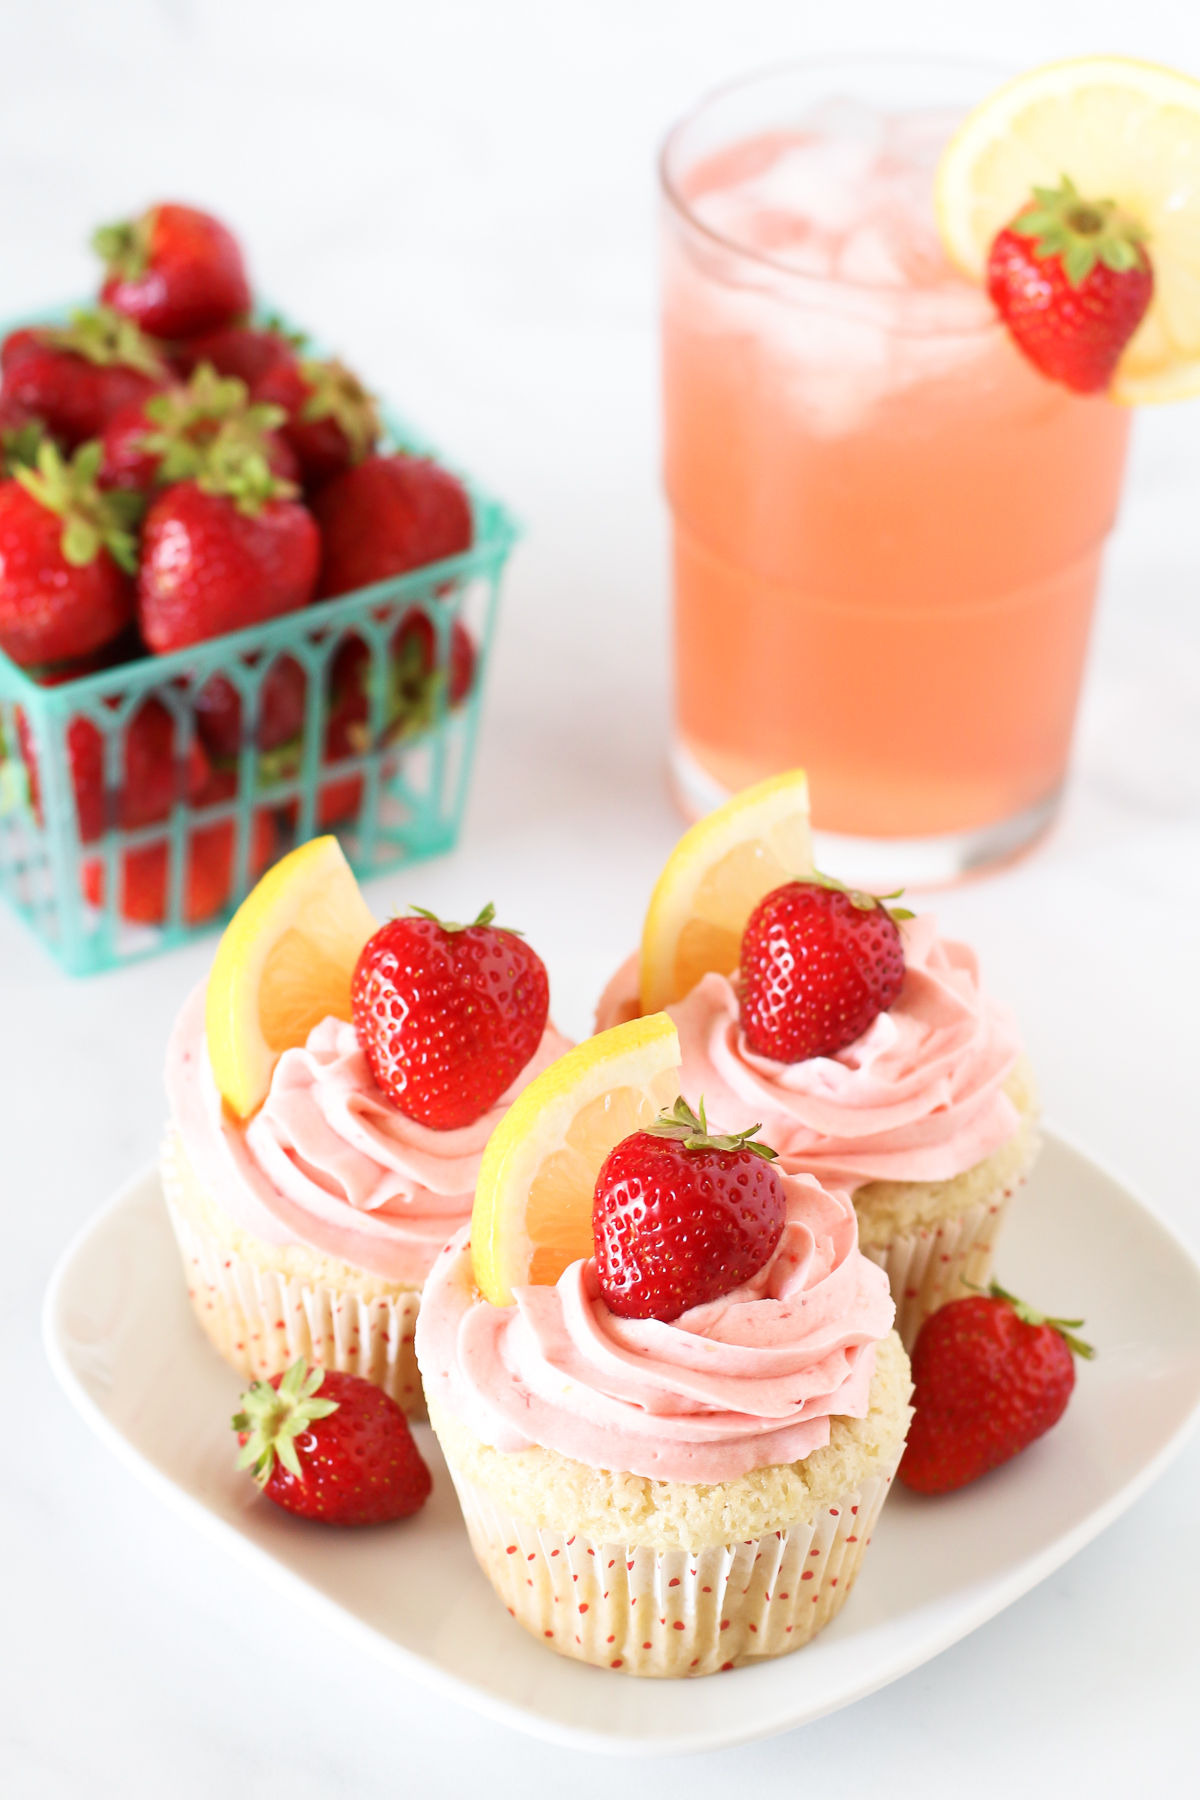 Gluten Free Vegan Strawberry Lemonade Cupcakes. Light, fluffy lemon cupcakes with a fresh strawberry buttercream. Tastes like summer!